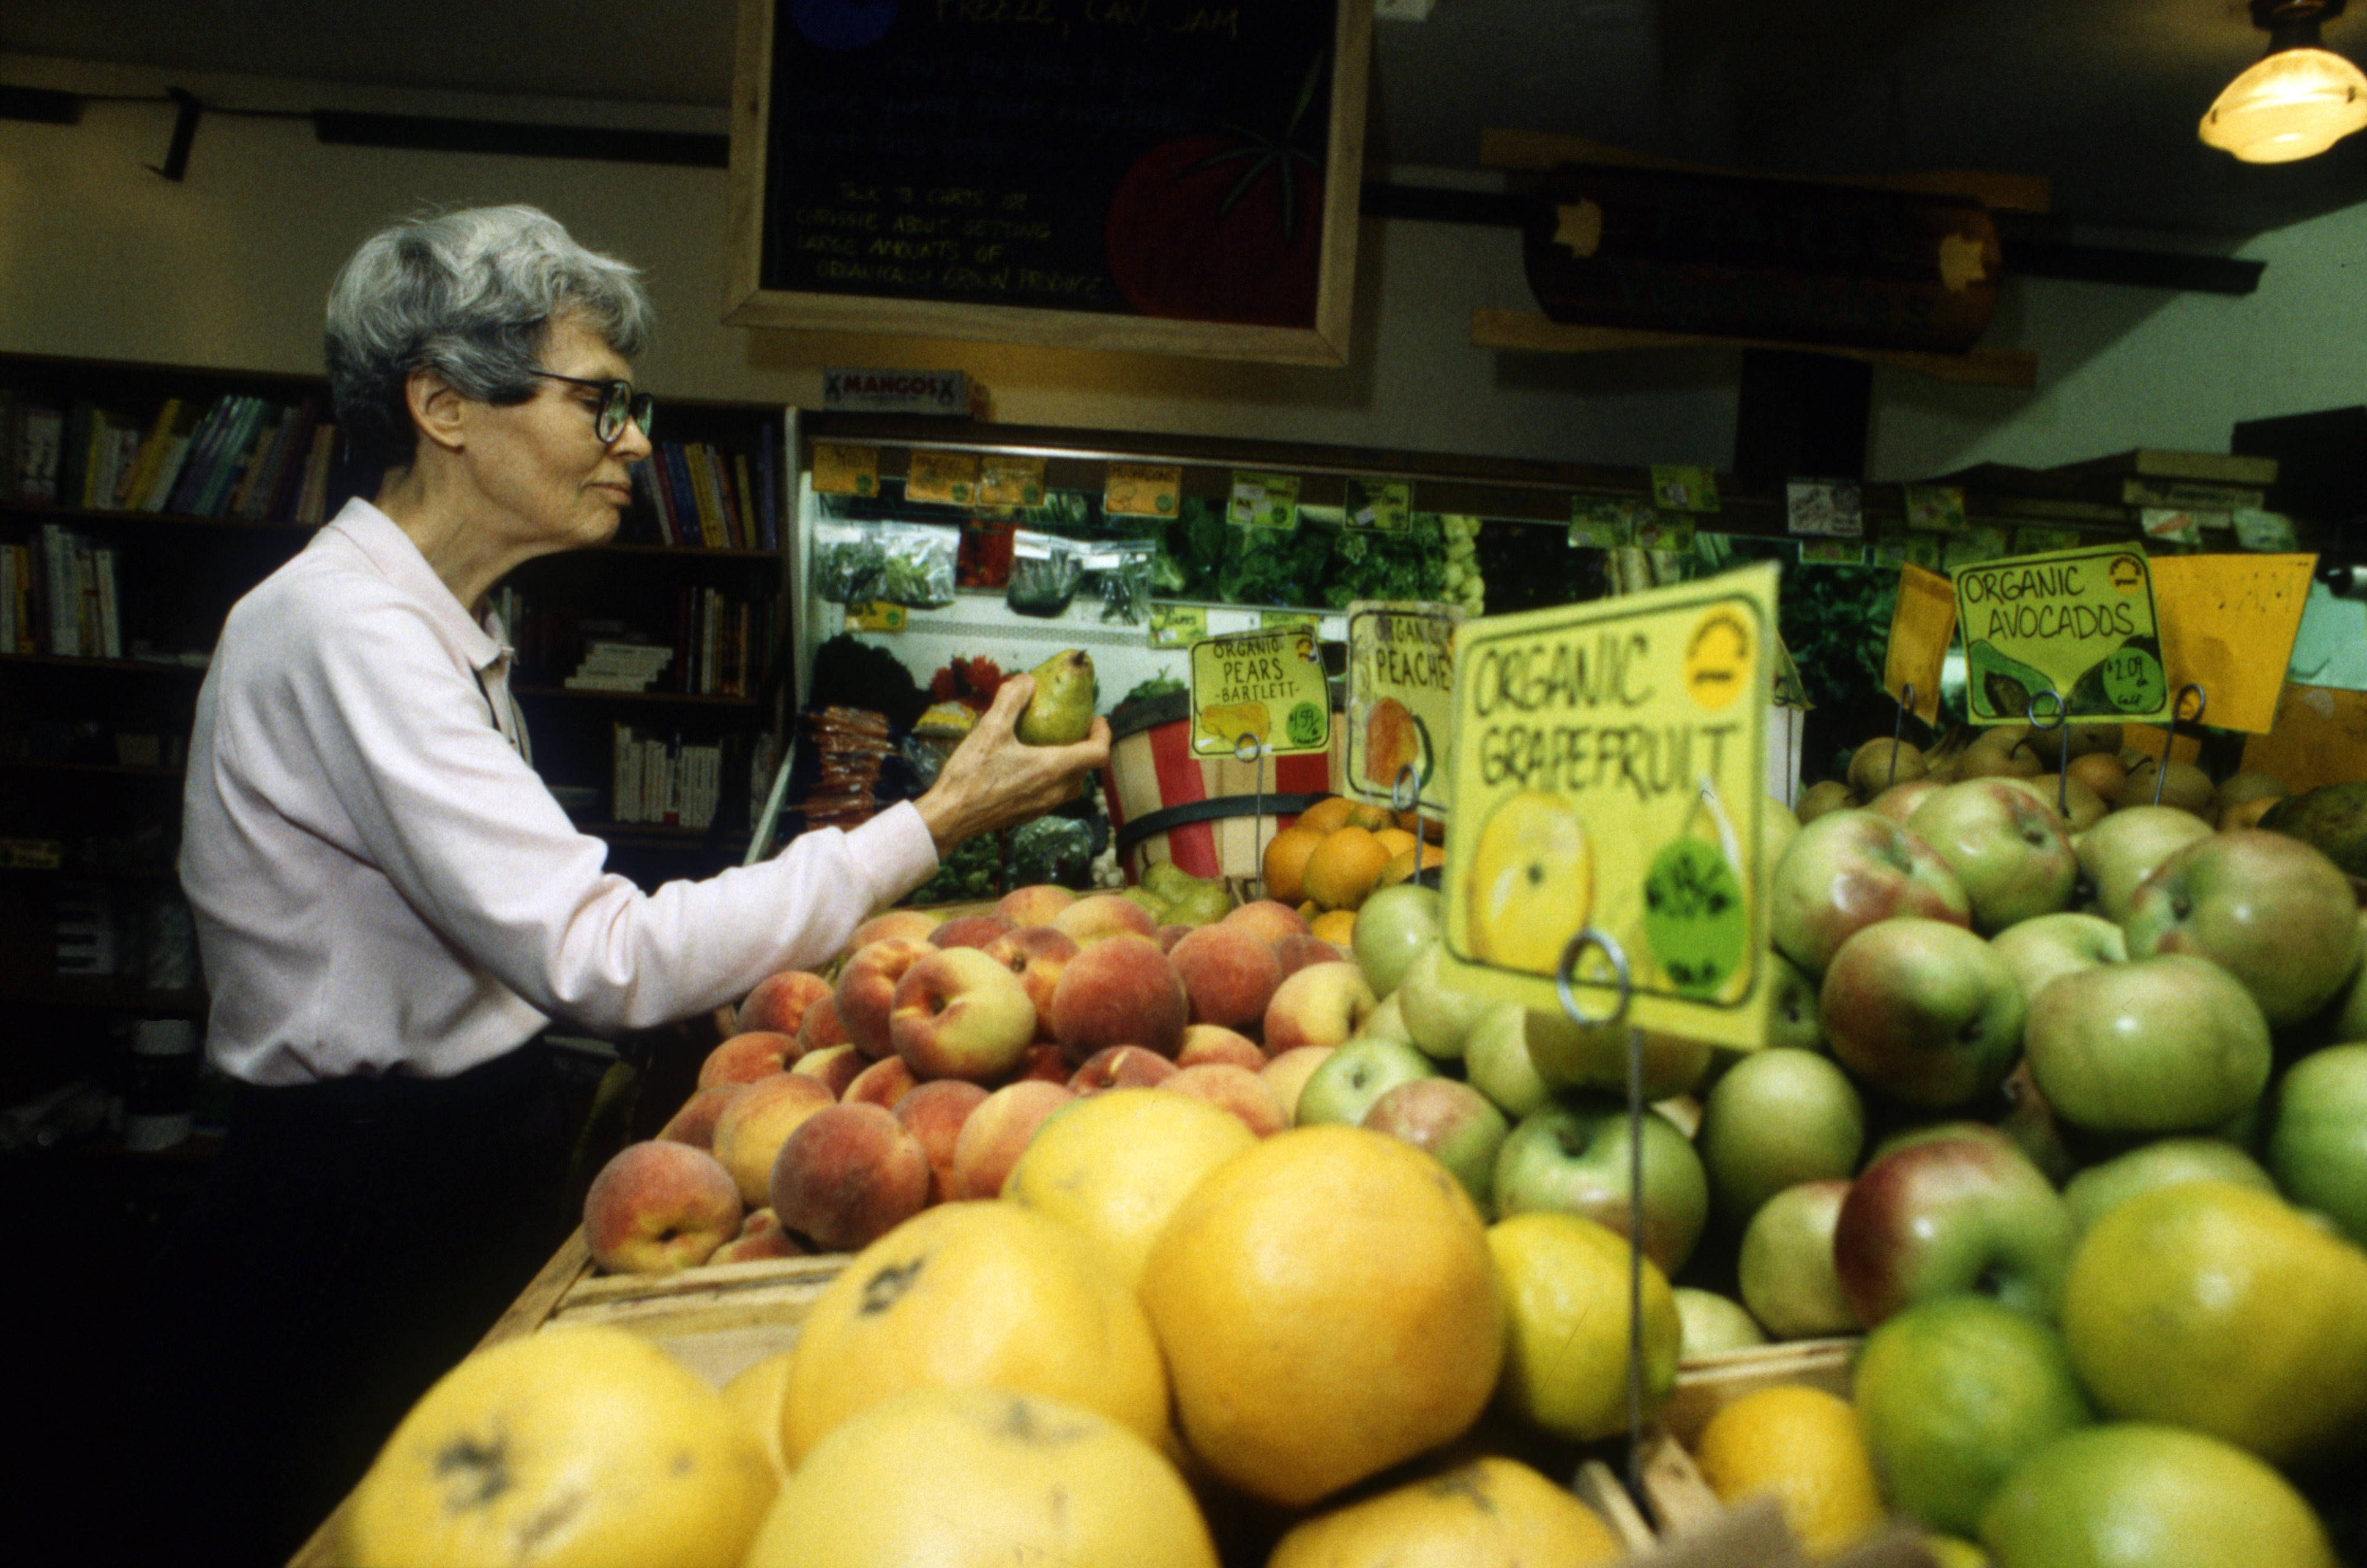 Dr. Paula Davey Shops At The People's Food Co-op, September 22, 1991 image